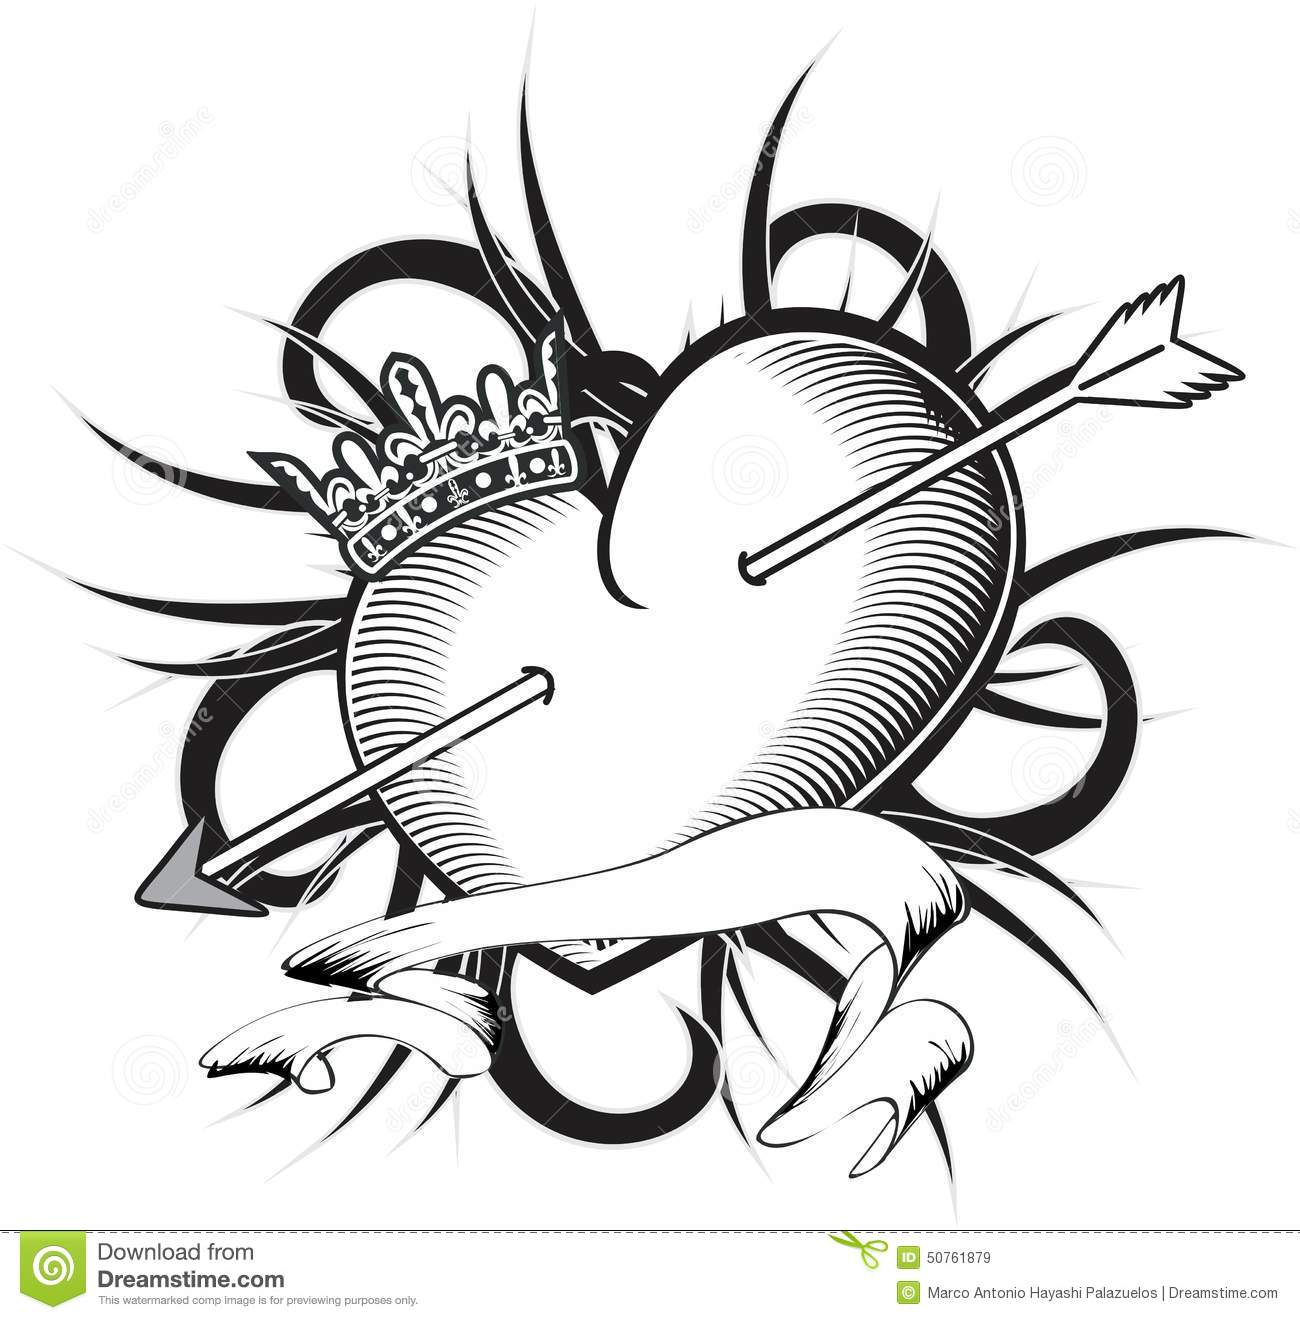 3b73058672bb5 Heart and ribbon tattoo tshirt in vector format very easy to edit. More  similar stock illustrations